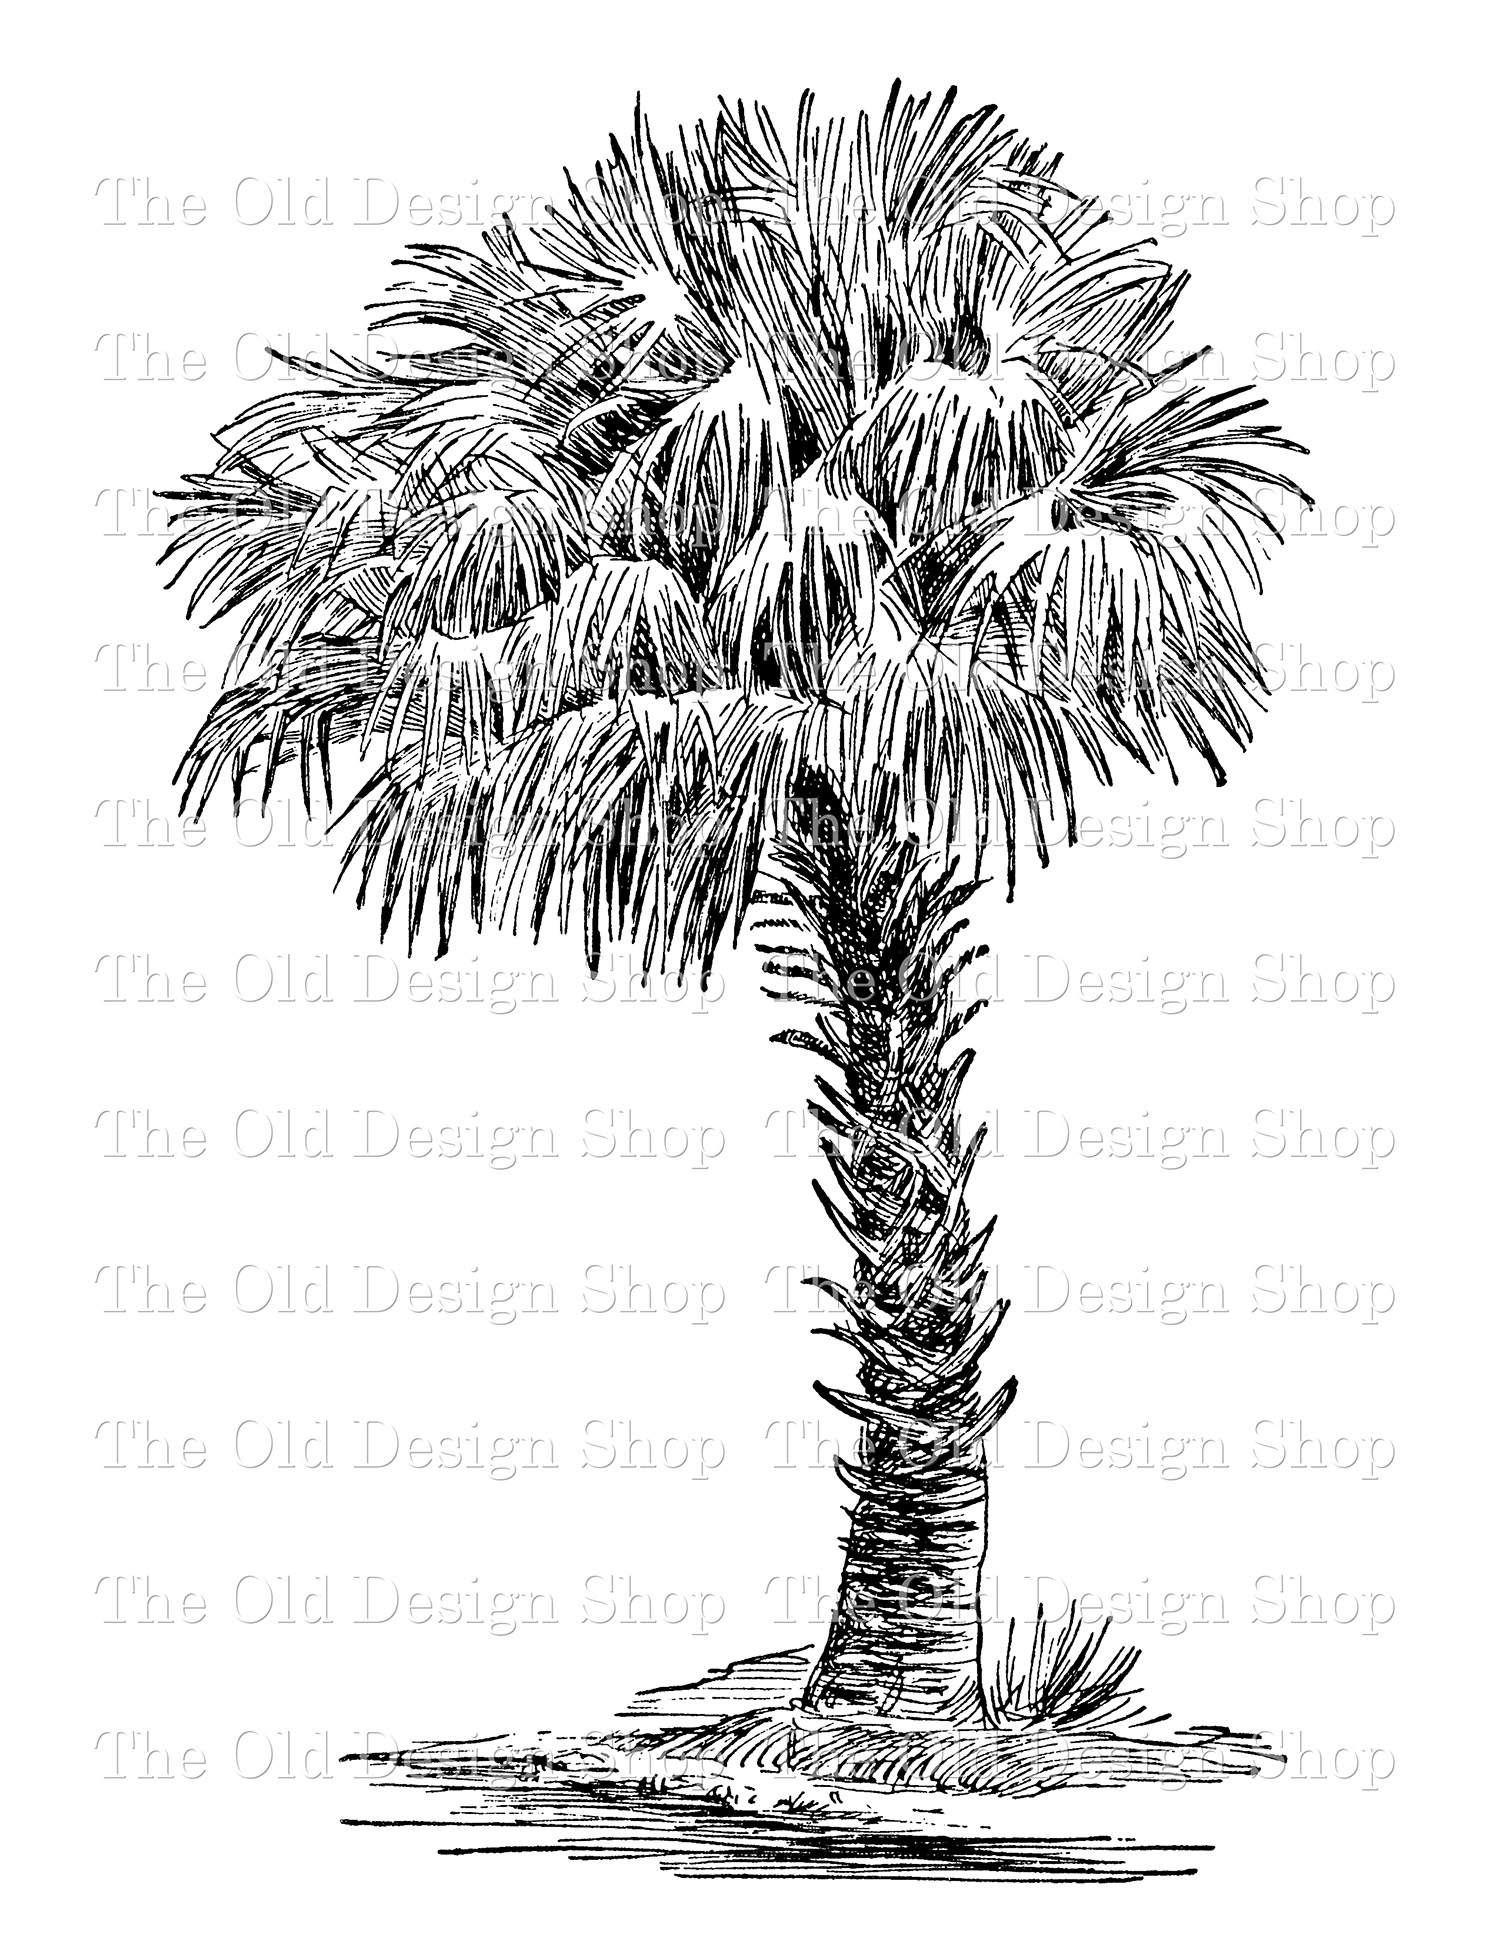 cabbage palmetto clip art digital stamp transfer image